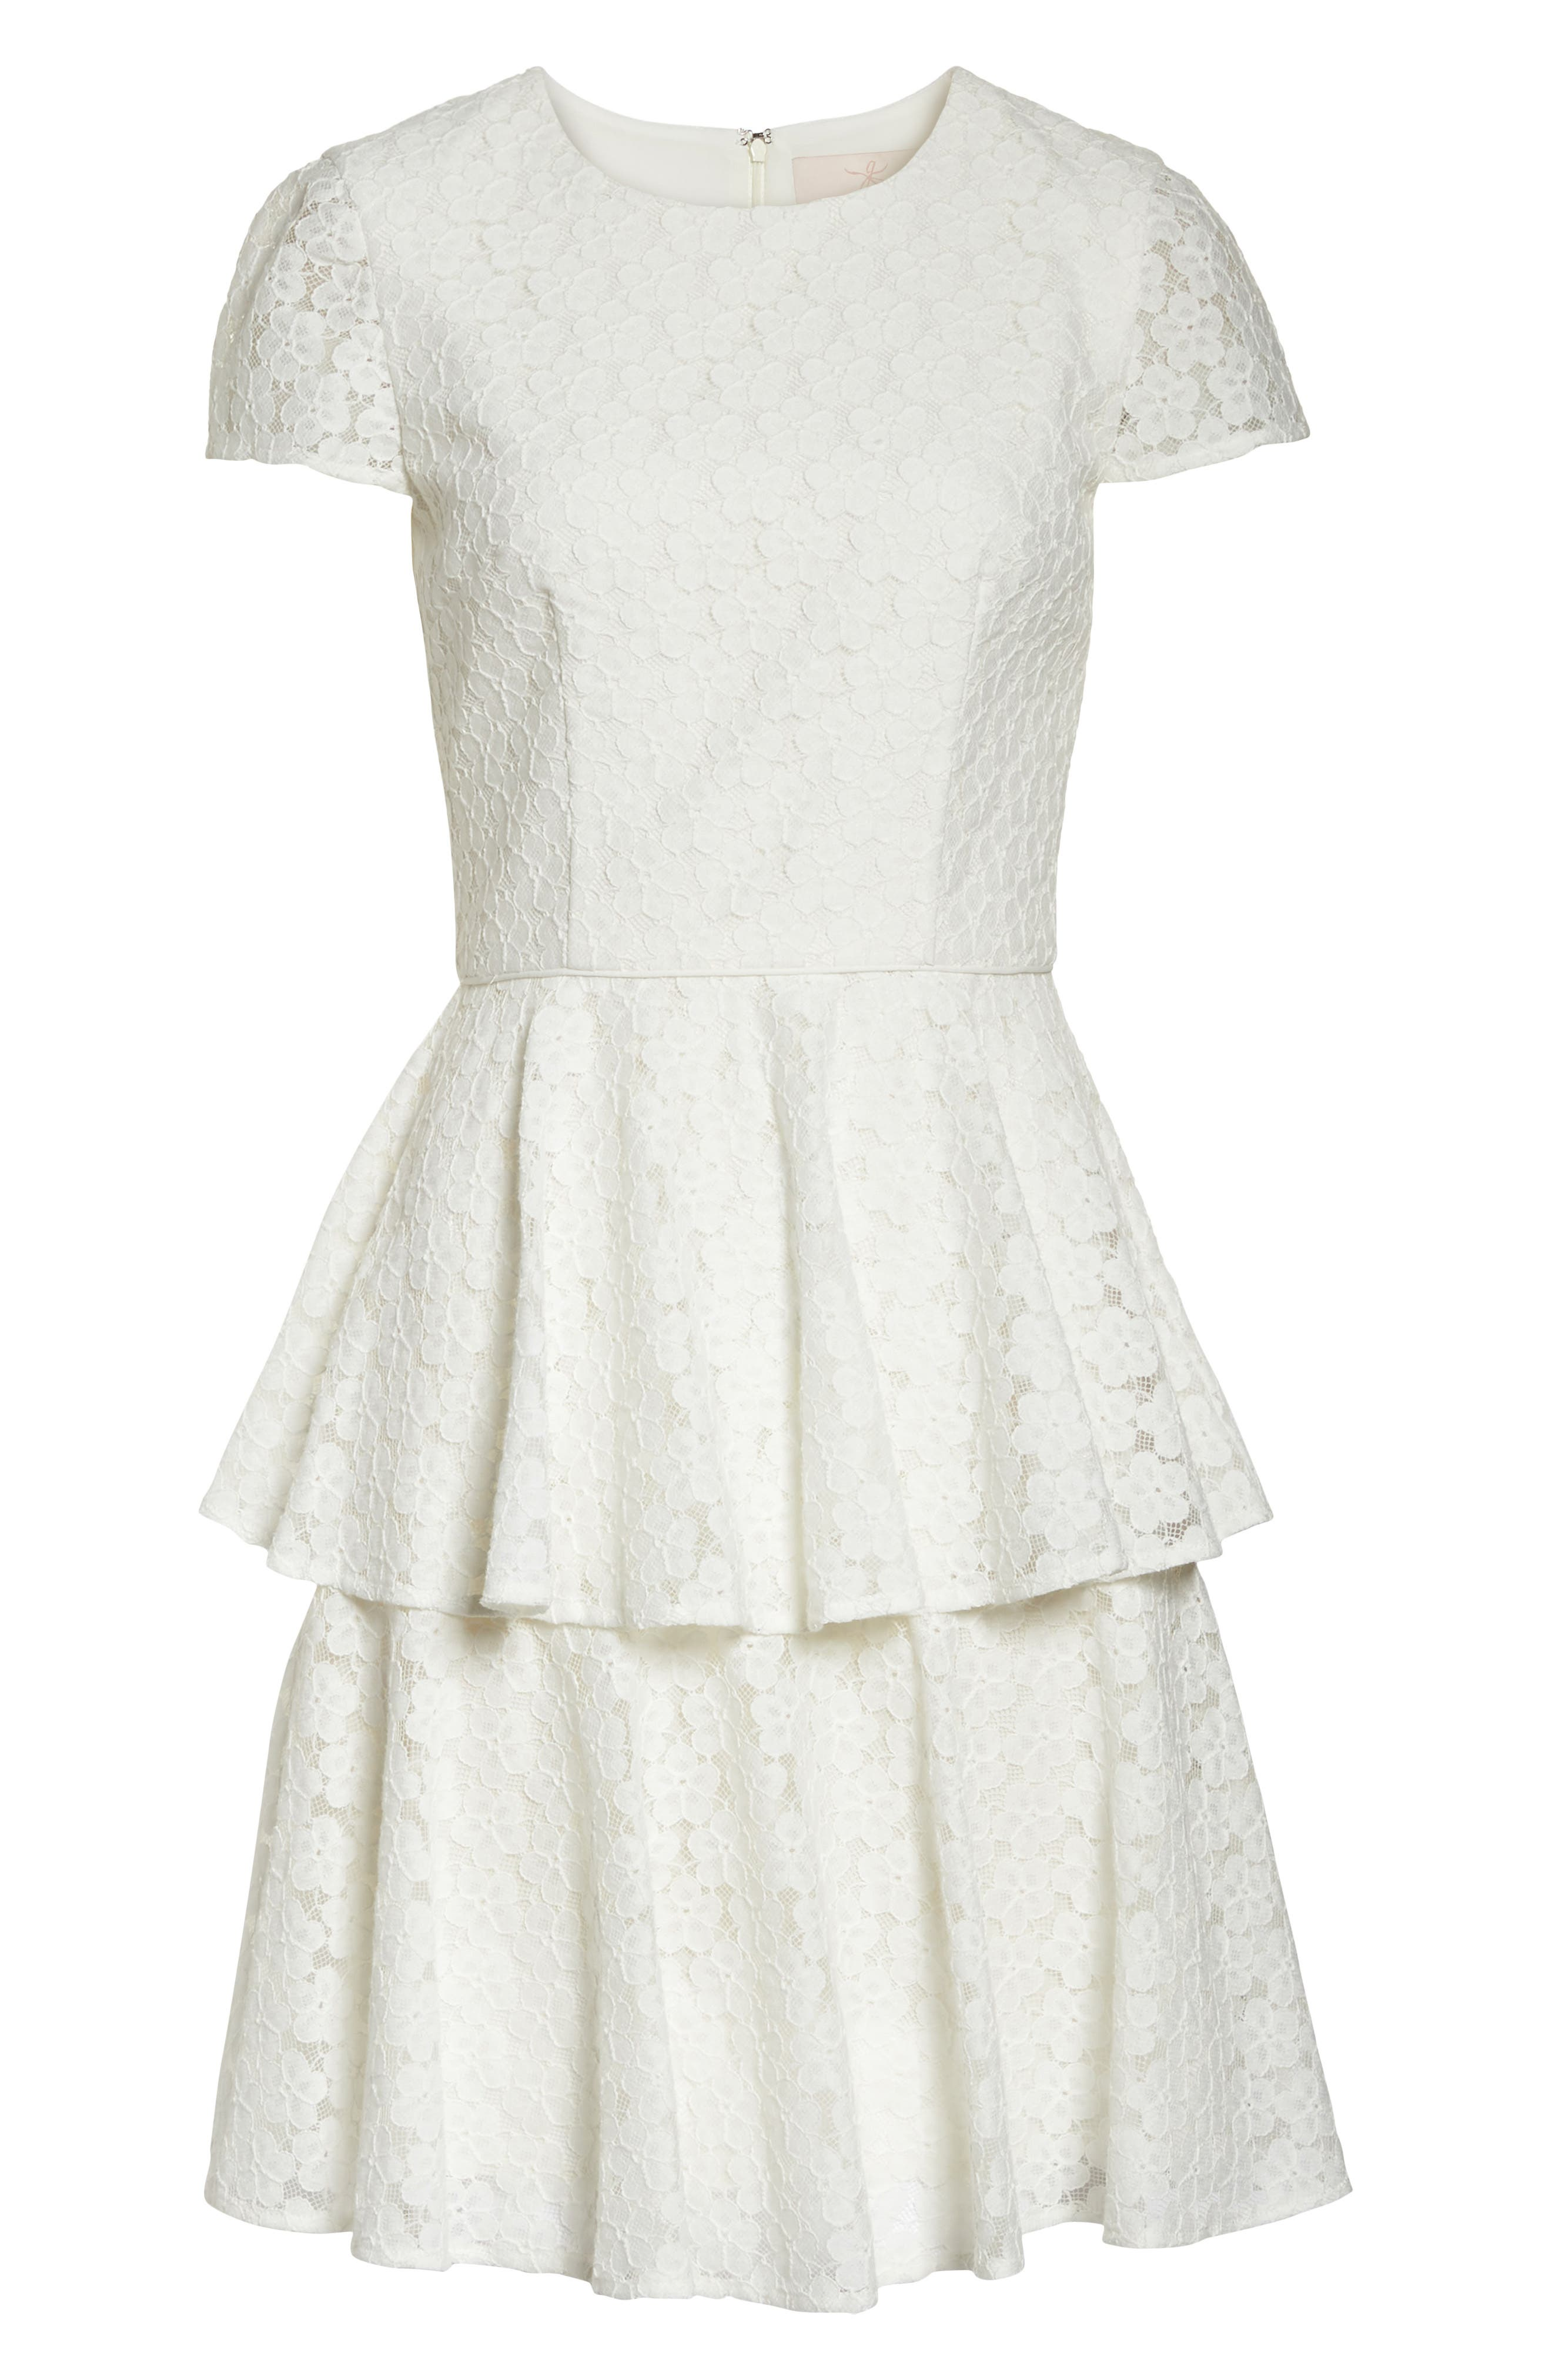 Daisy Lace Tiered Fit & Flare Dress,                             Alternate thumbnail 7, color,                             120